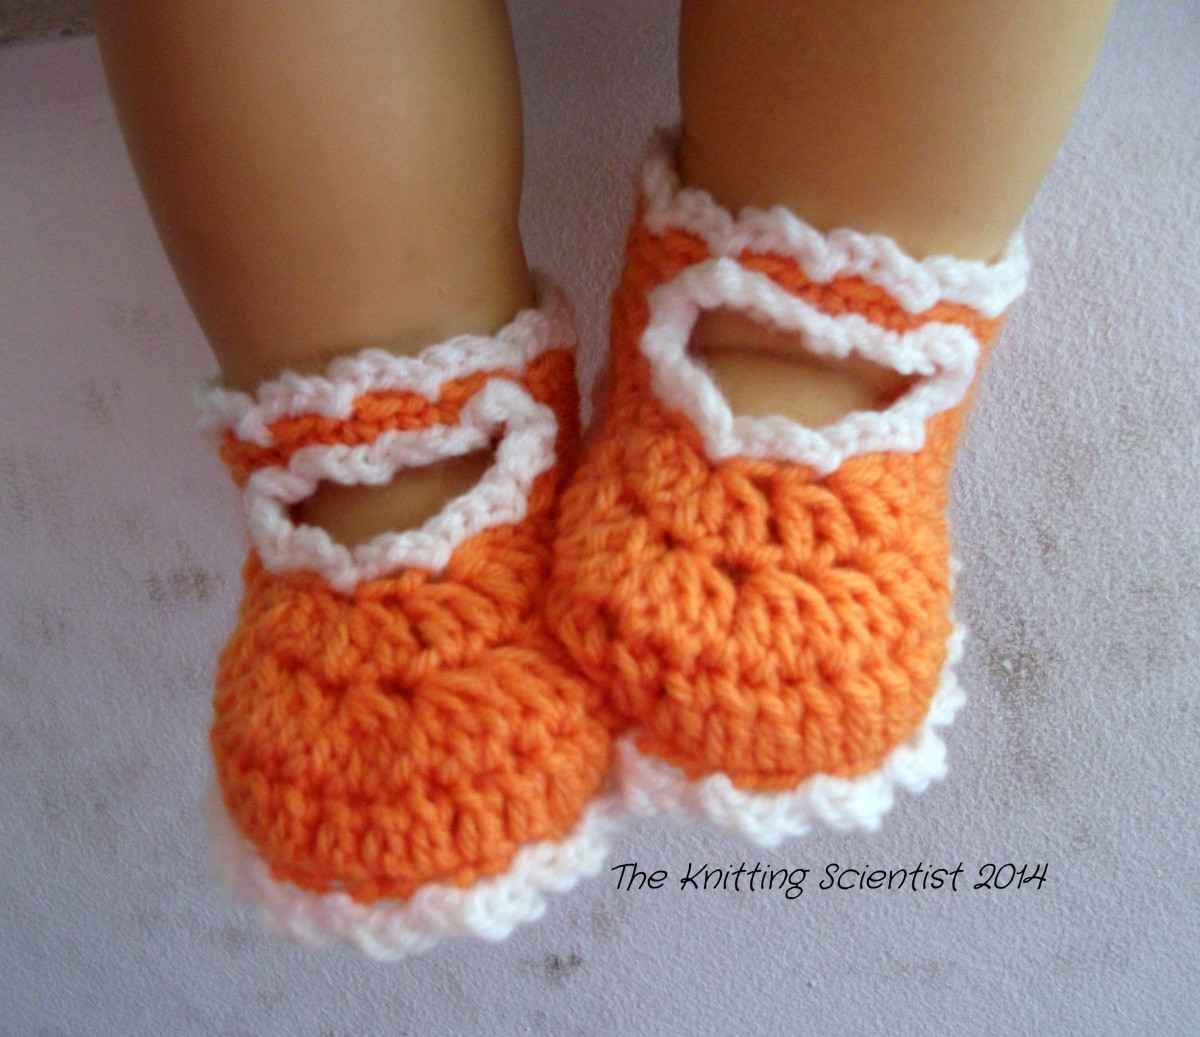 Crochet Pinterest Awesome Crochet Baby Shoes Pattern Pinterest Of Brilliant 45 Pictures Crochet Pinterest